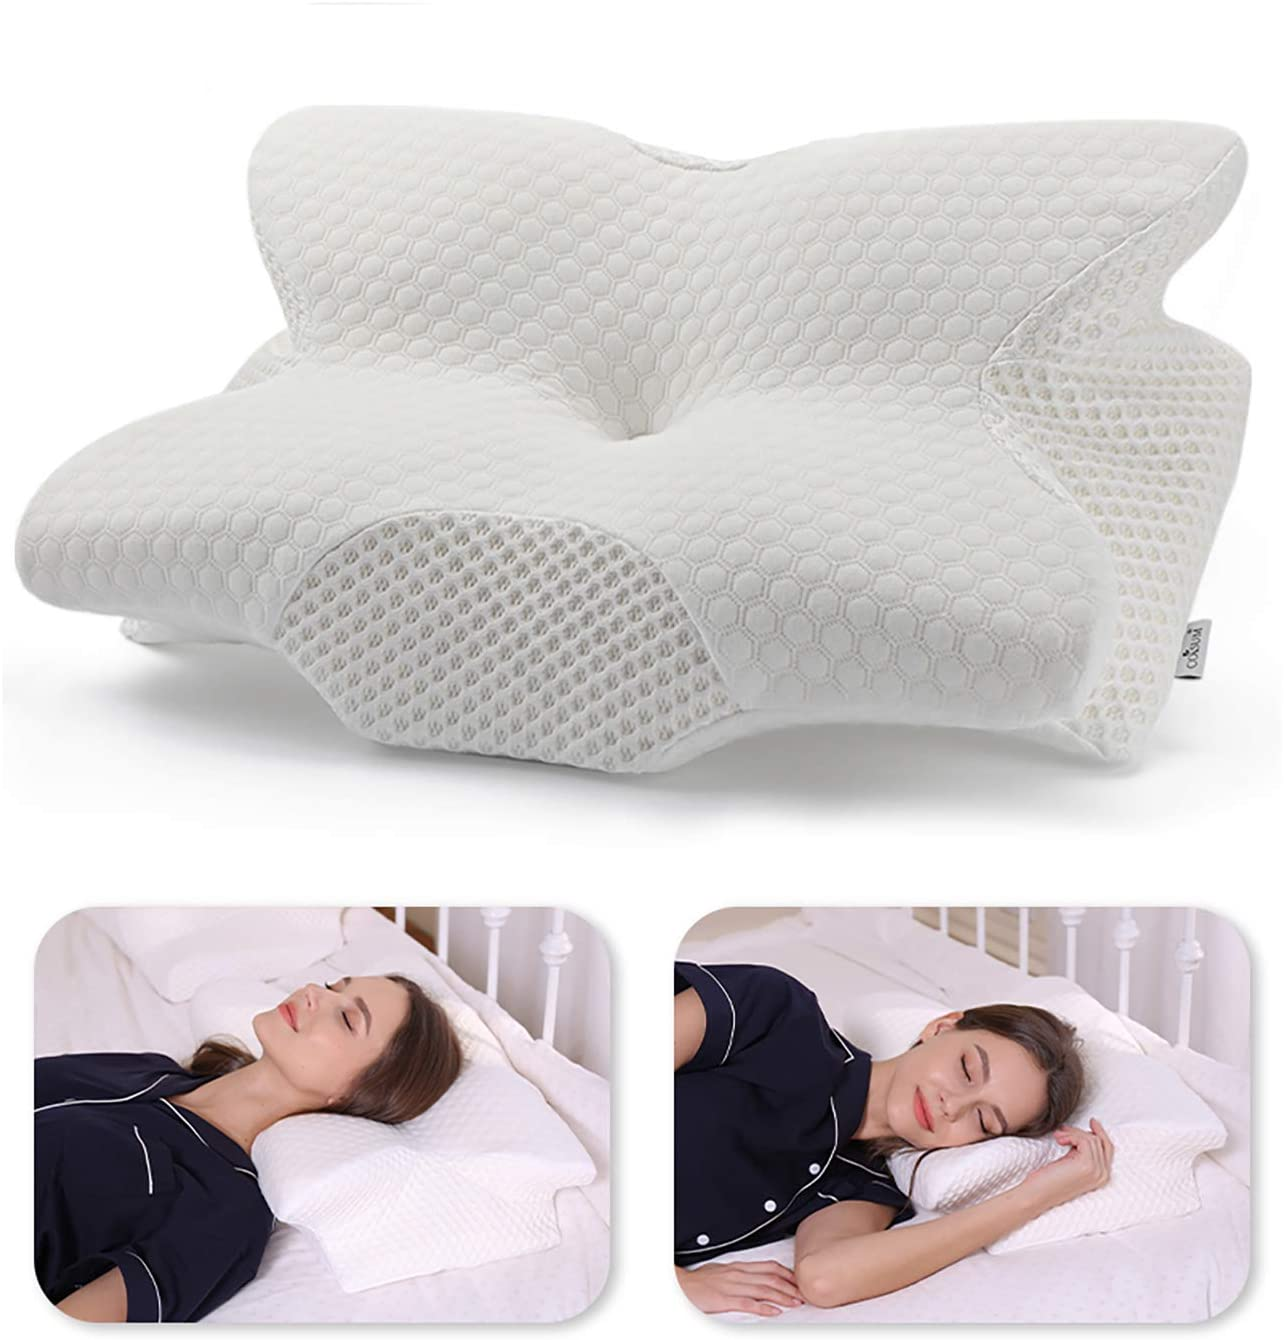 Coisum Cervical Memory Foam Neck Pillow